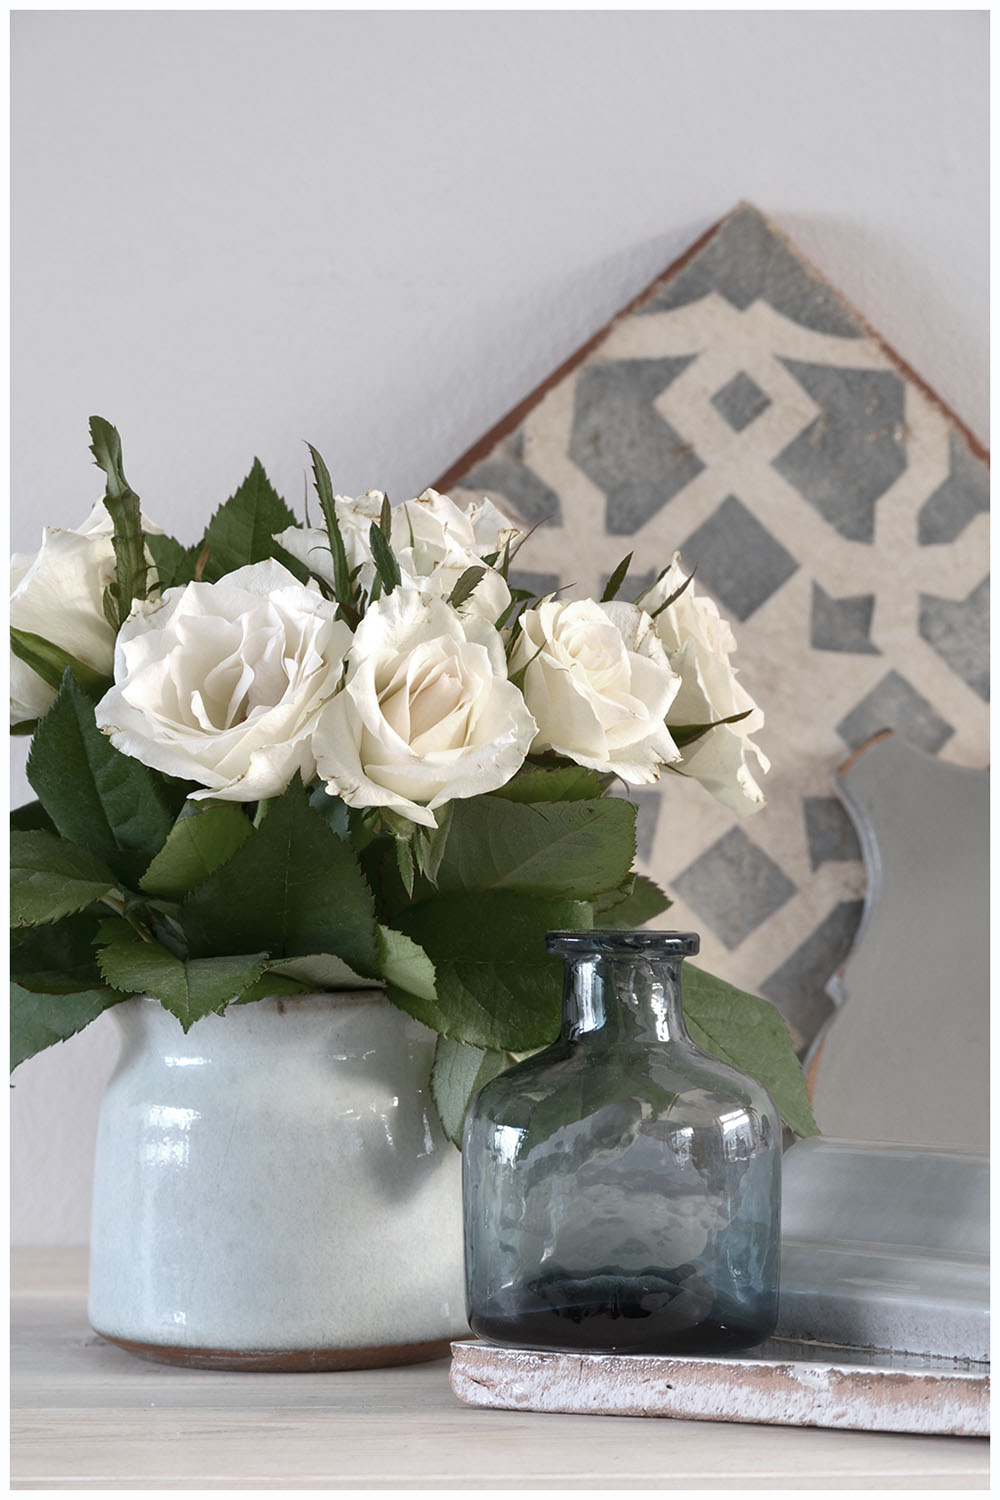 White roses and moroccan tile